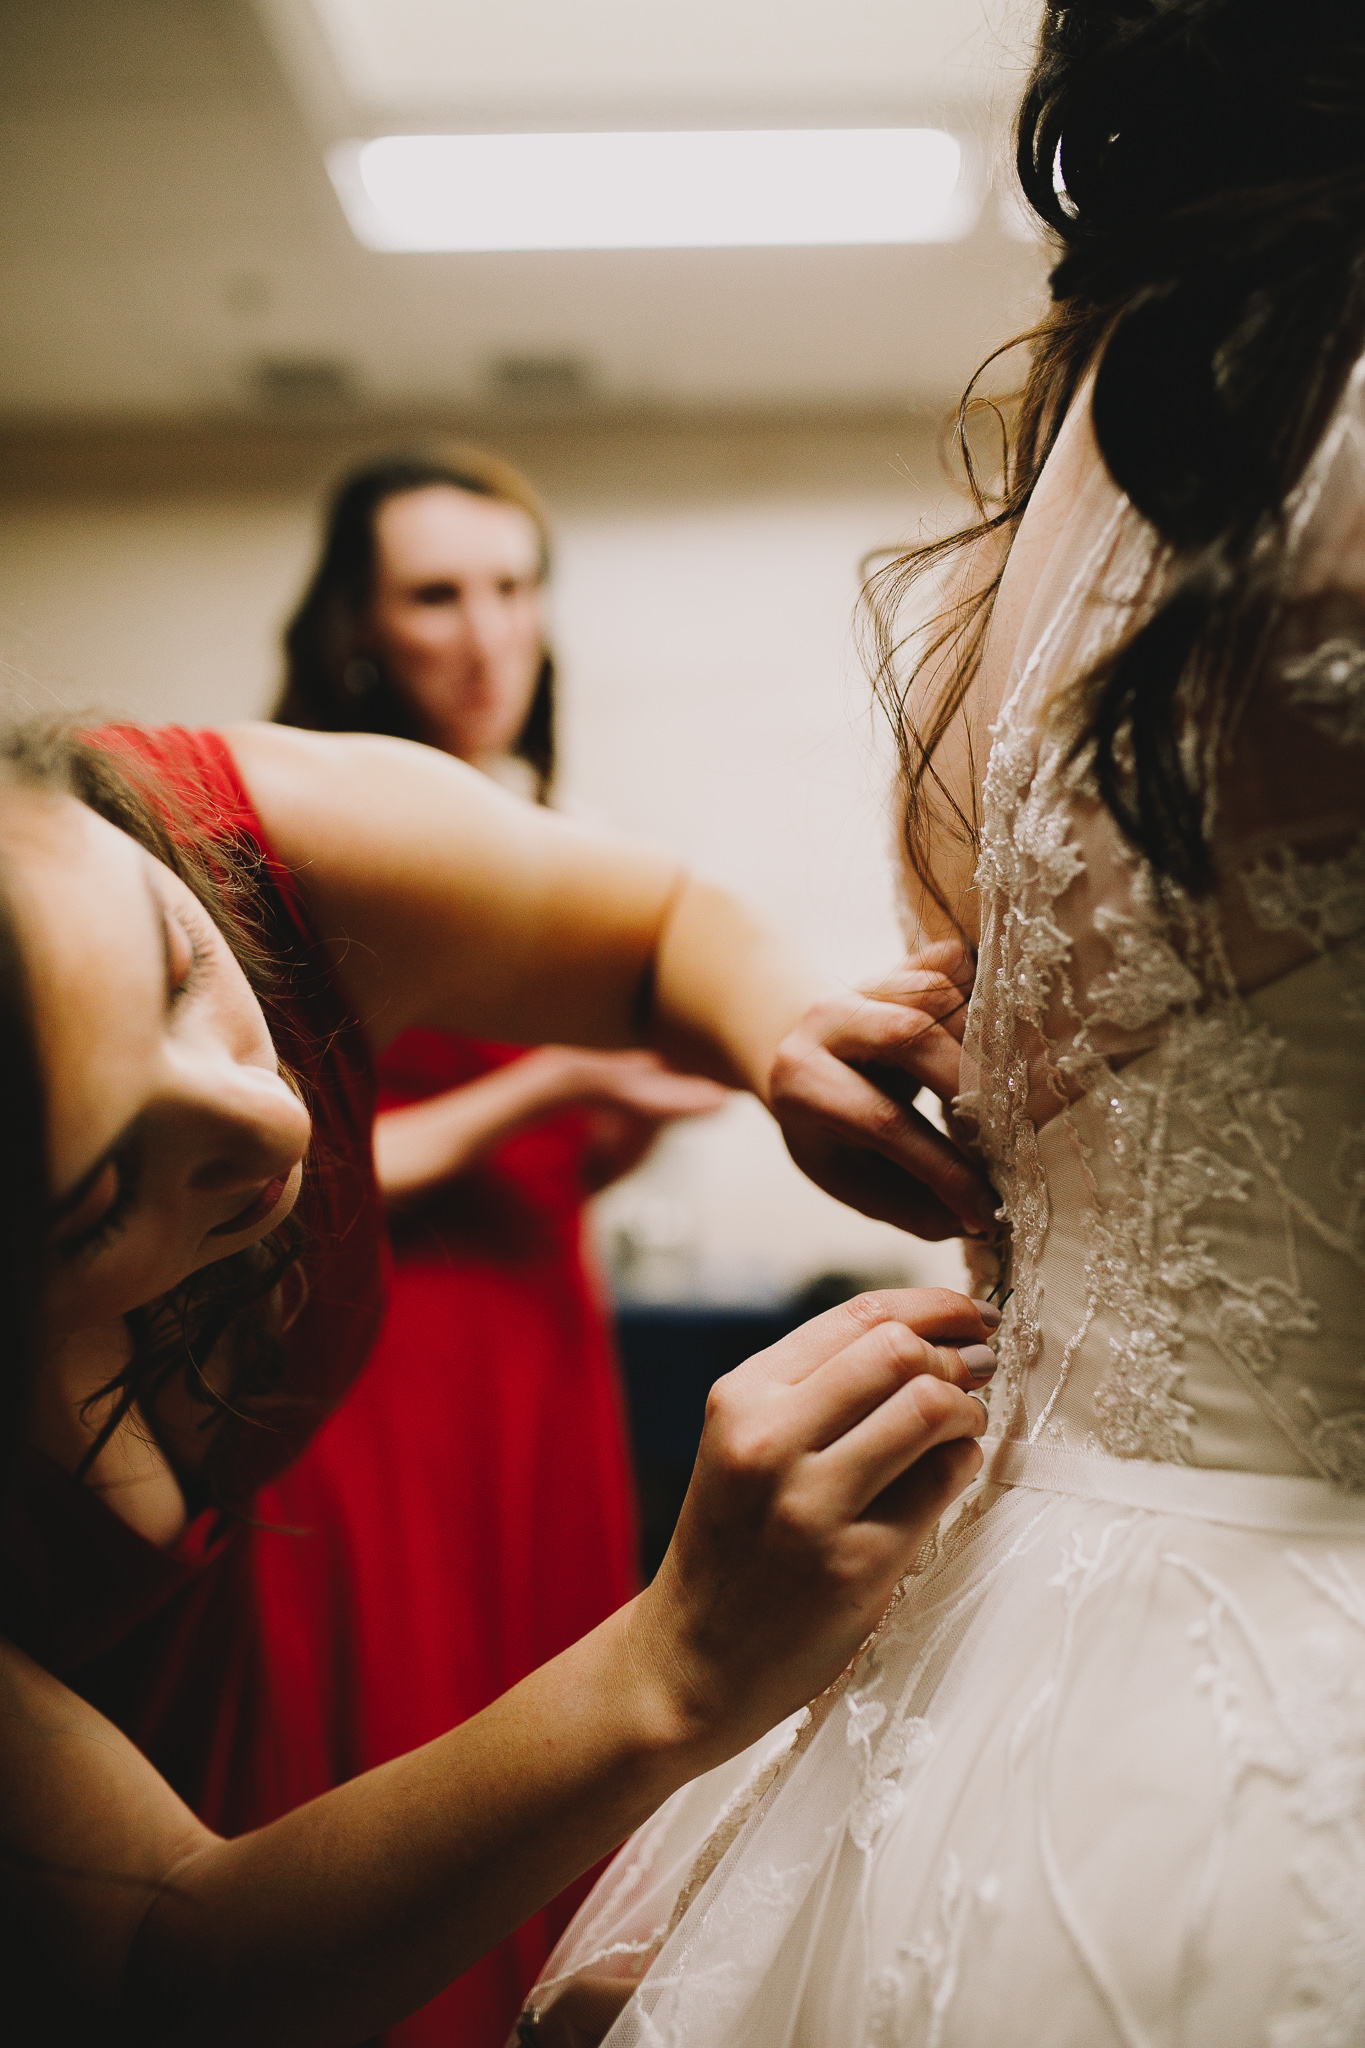 Archer Inspired Photography Shelby and Ben Wedding Sally Tomatoes NorCal Rohnert Park California-8.jpg